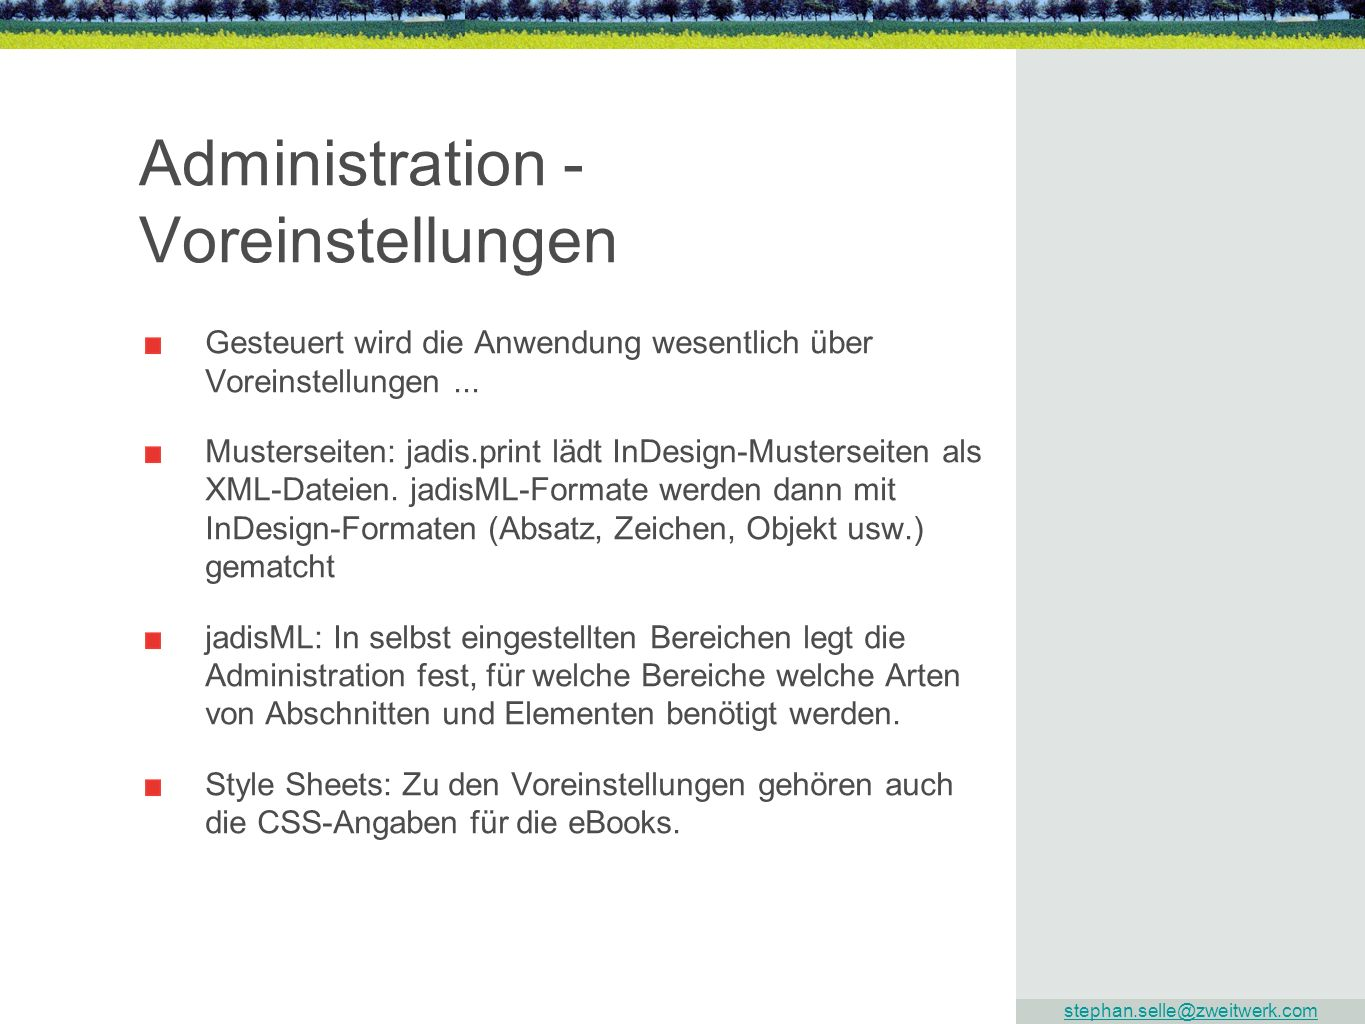 Administration - Voreinstellungen